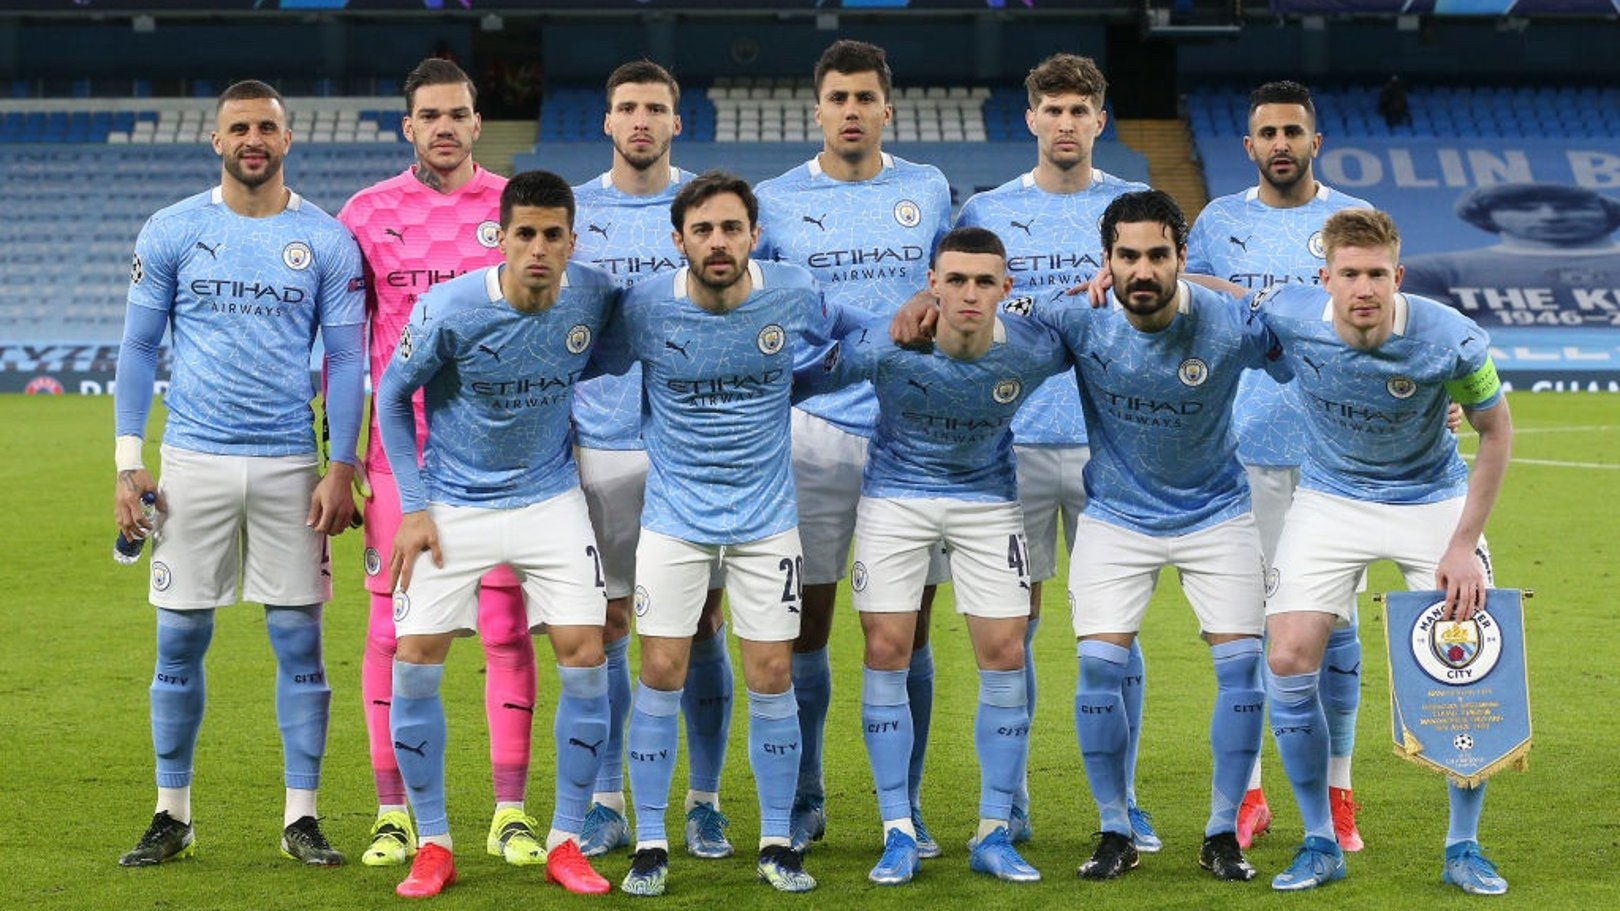 SQUAD GOALS: The starting team pose for a photo ahead of kick-off.